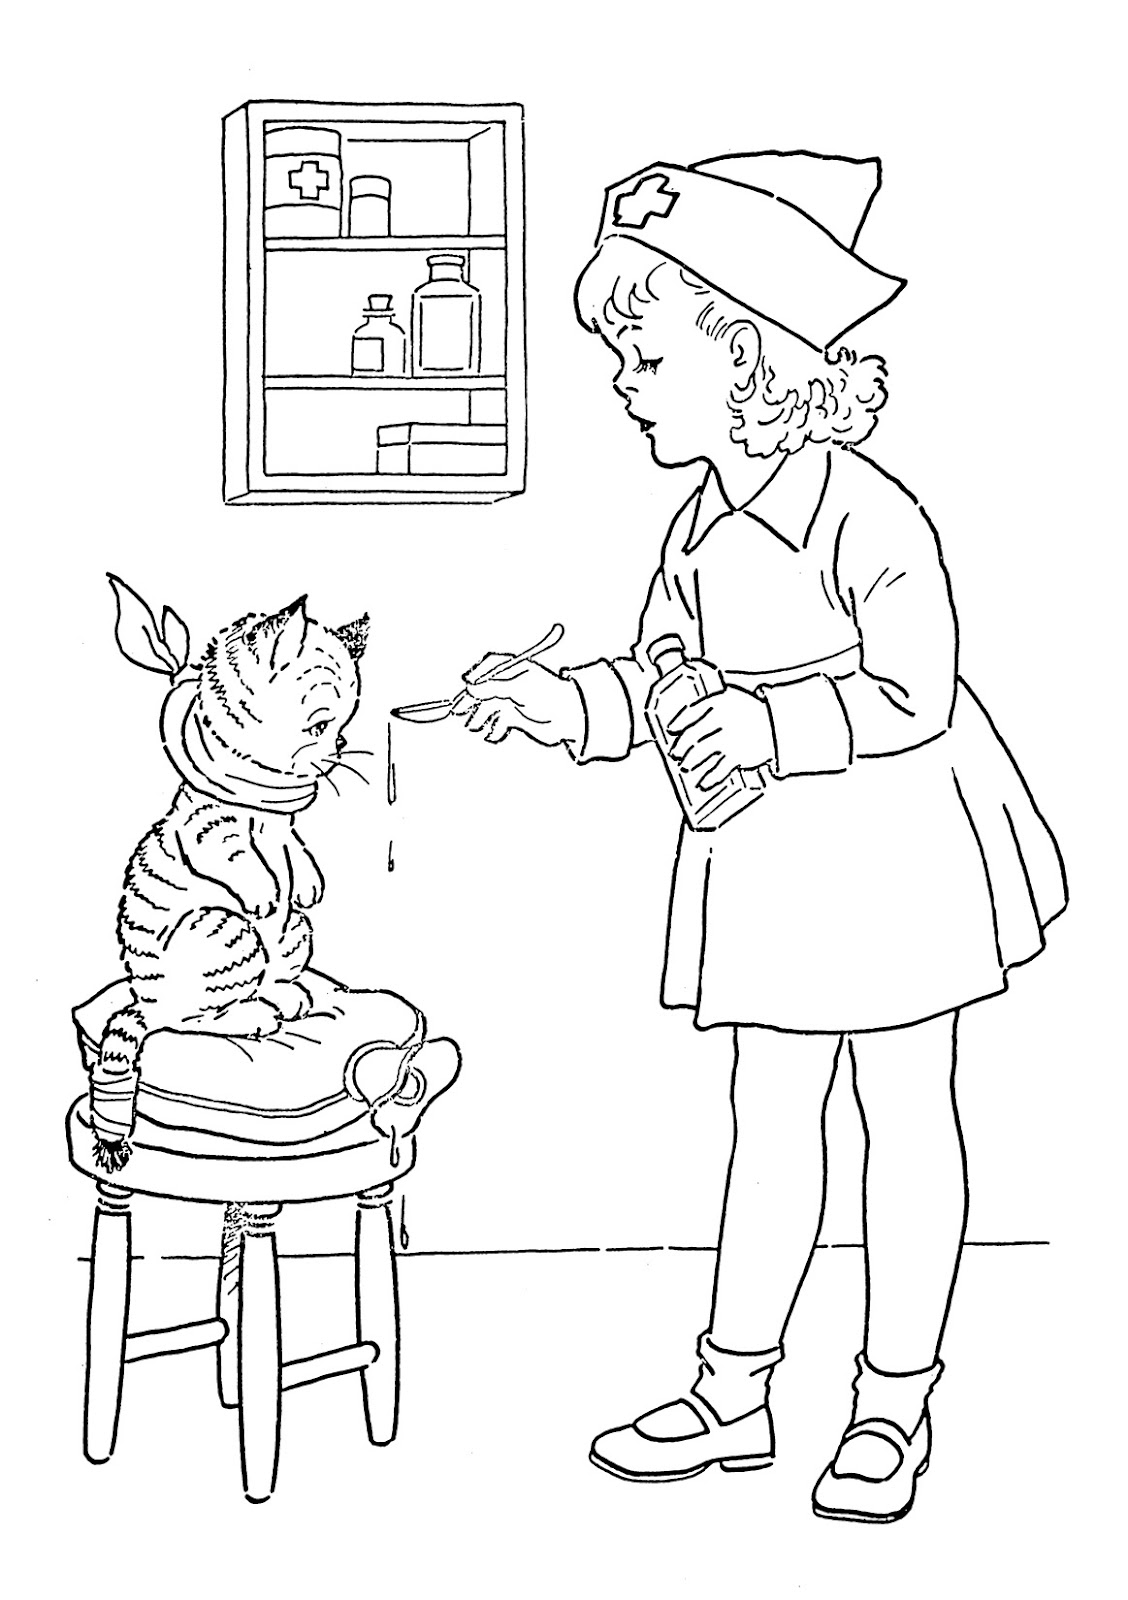 Kids Vintage Printable - Coloring Page - Lil Nurse - The ...